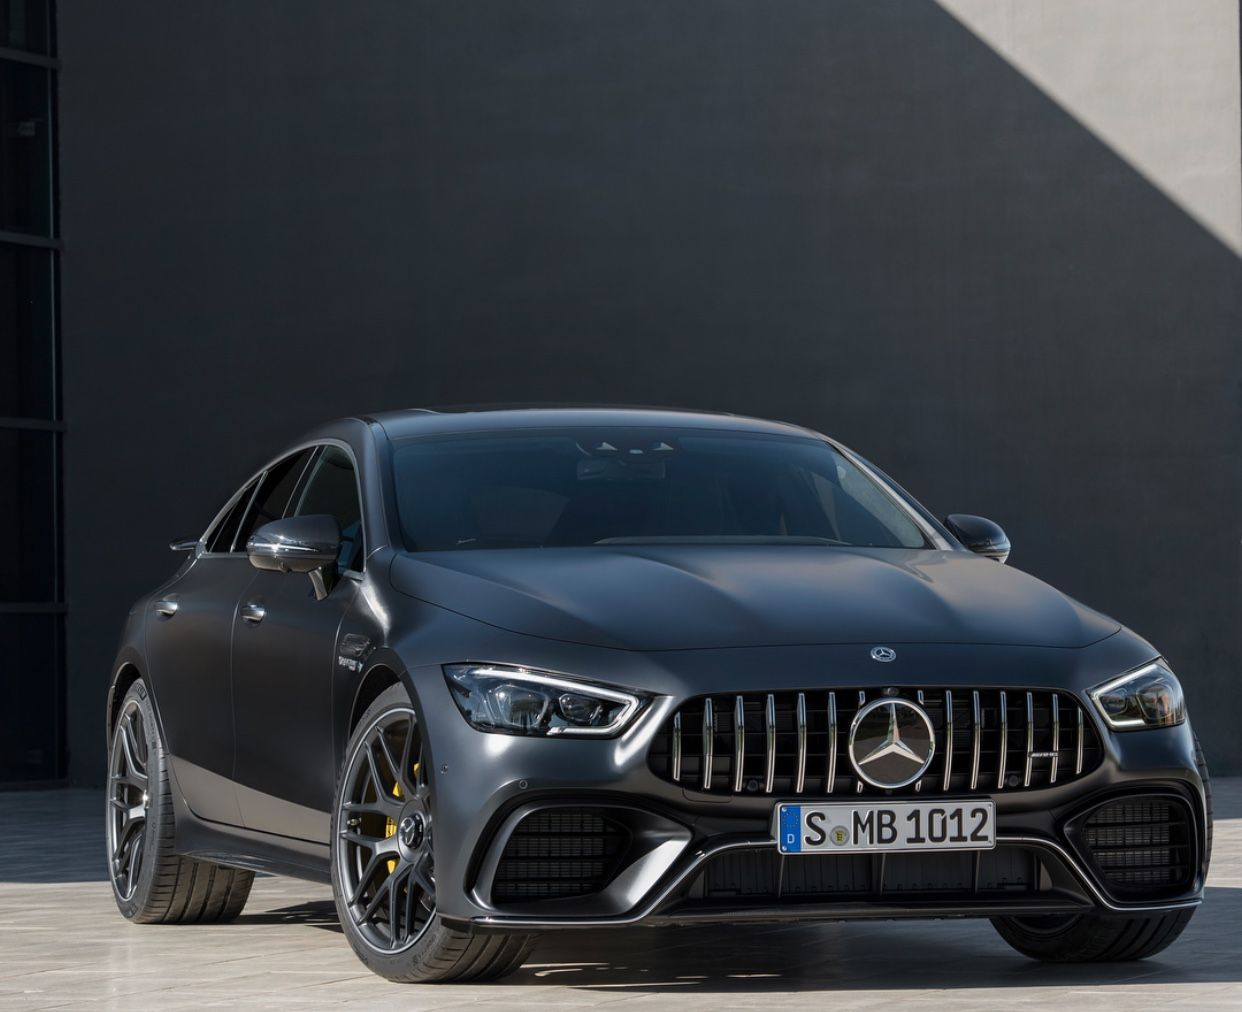 Mercedes Amg Gt63s Gt 4 Door Coupe Mercedes Benz Amg Mercedes Amg Sports Cars Luxury